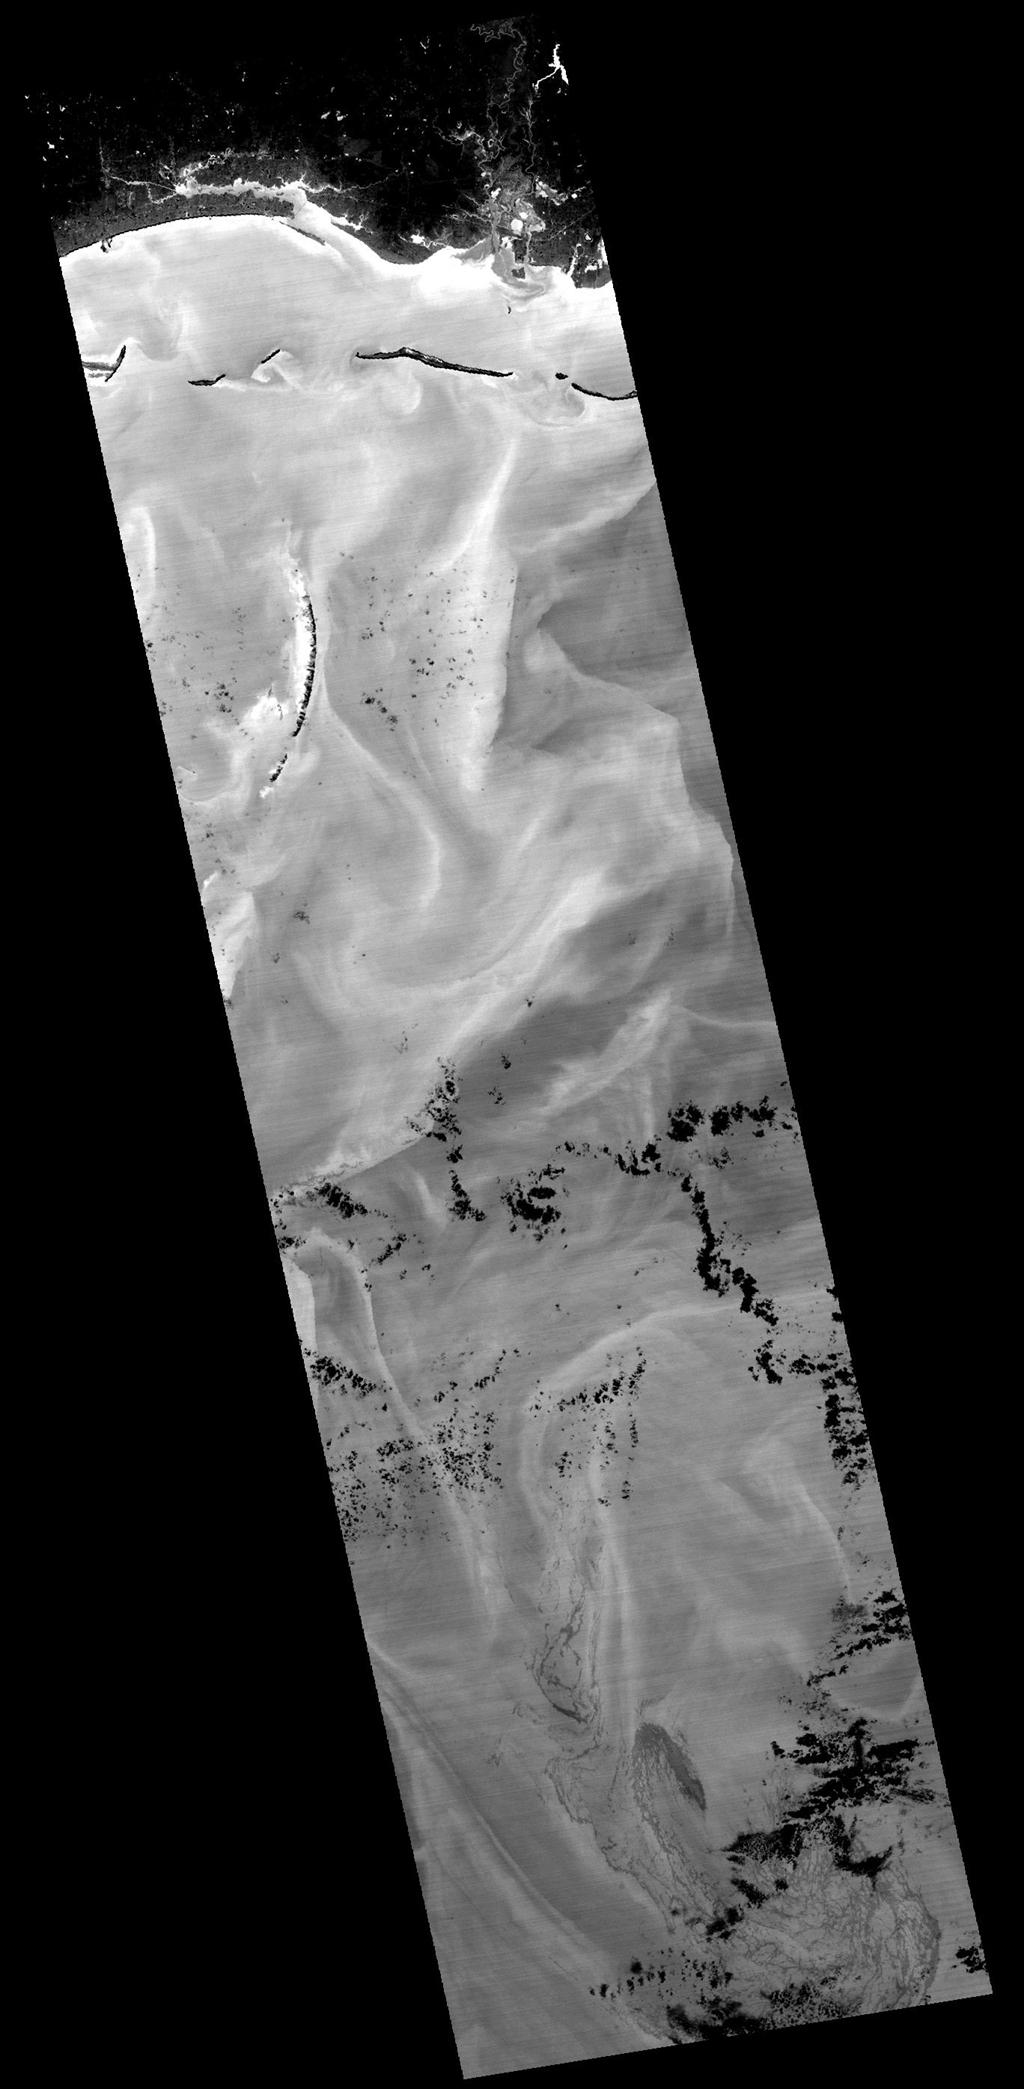 NASA's Terra spacecraft captured this image of the growing oil spill in the Gulf of Mexico on May 7, 2010. The thickest parts of the oil spill appear as dark grey, filamentous masses in the southern part of the image, extending off of the bottom.